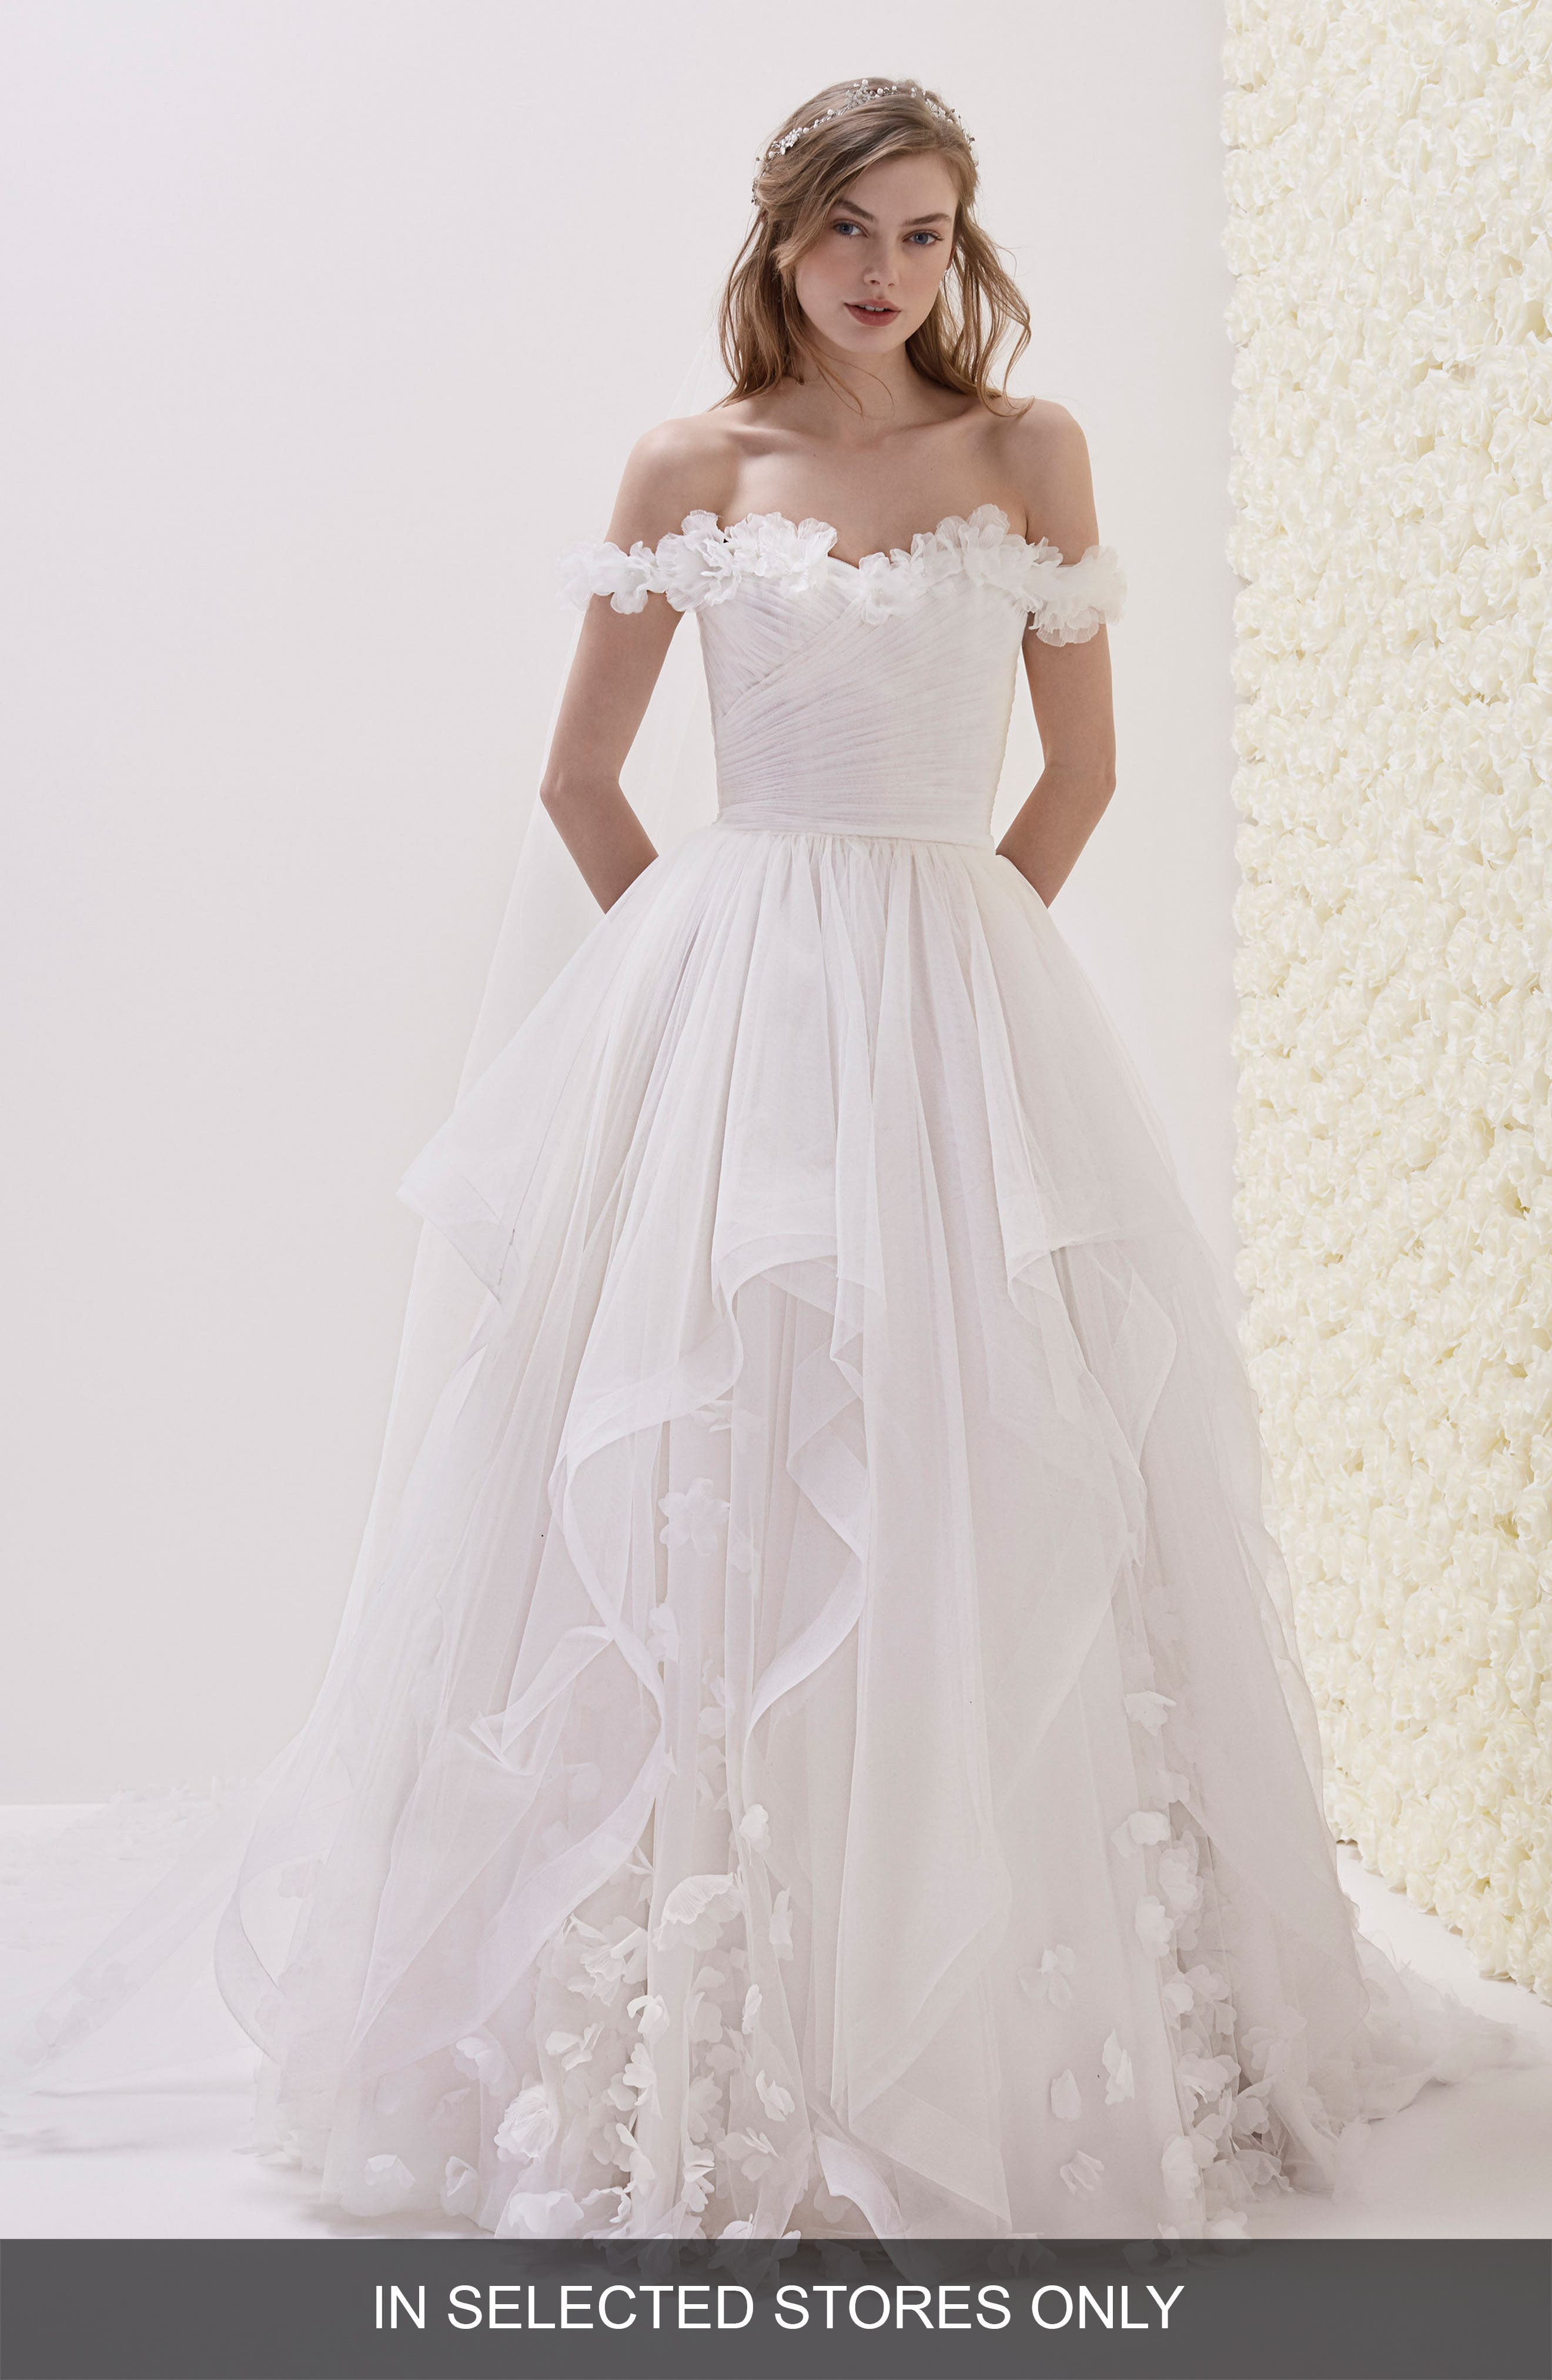 Elodia Off the Shoulder Ballgown,                         Main,                         color, OFF WHITE